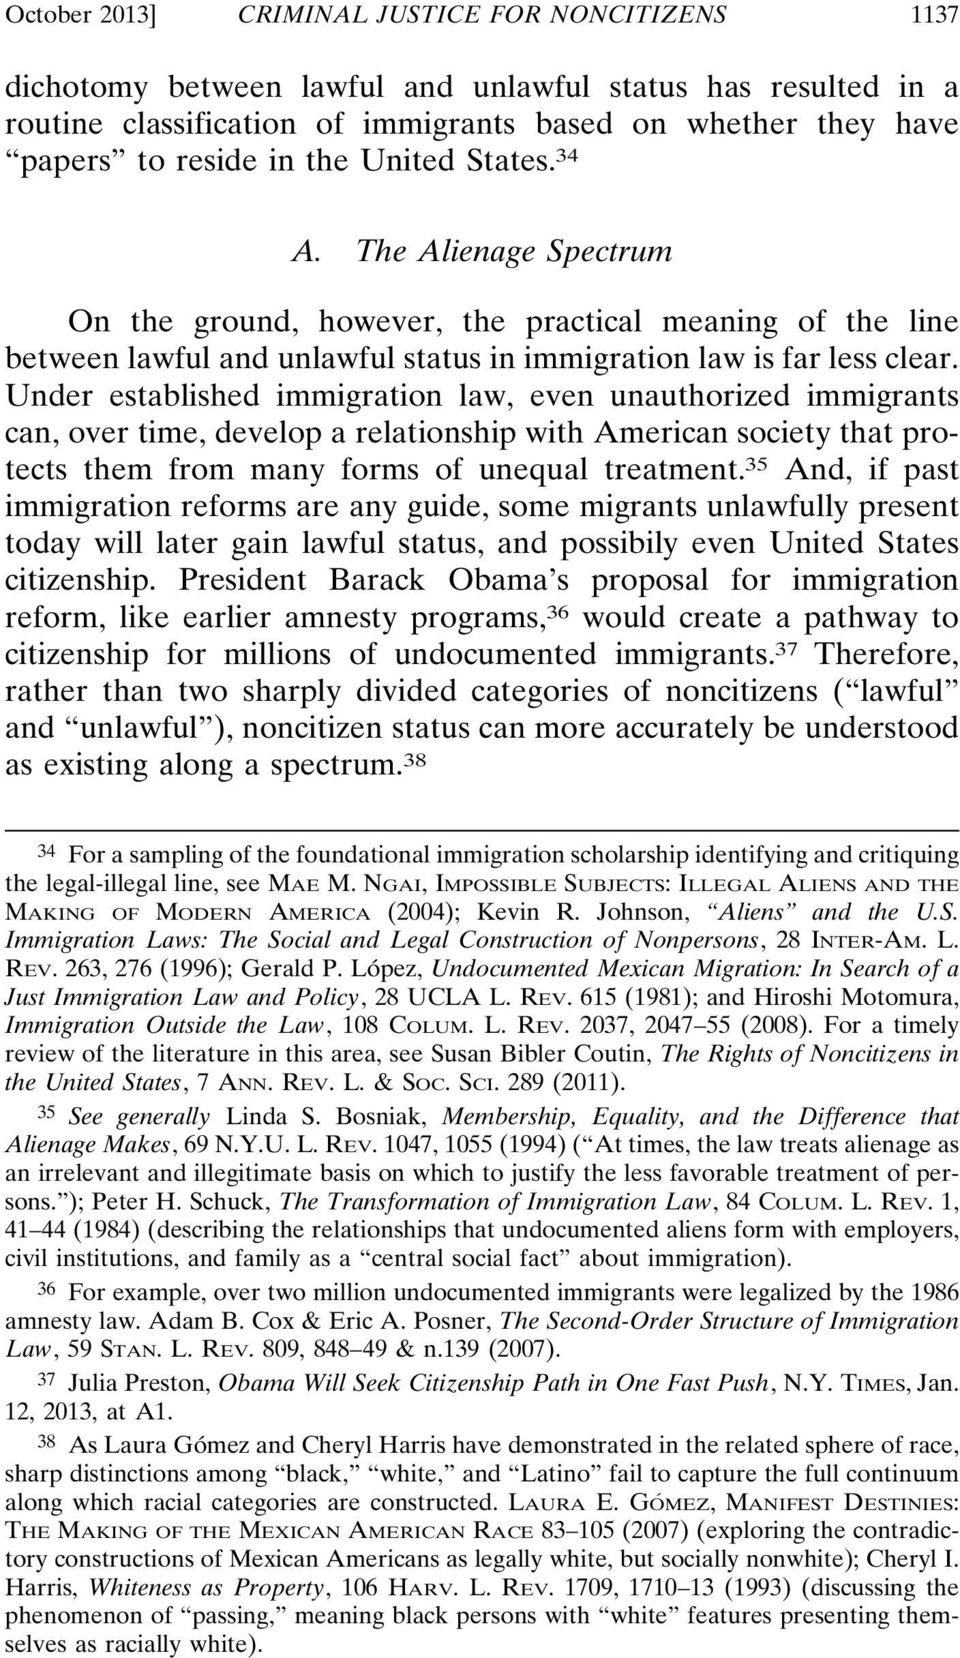 Under established immigration law, even unauthorized immigrants can, over time, develop a relationship with American society that protects them from many forms of unequal treatment.